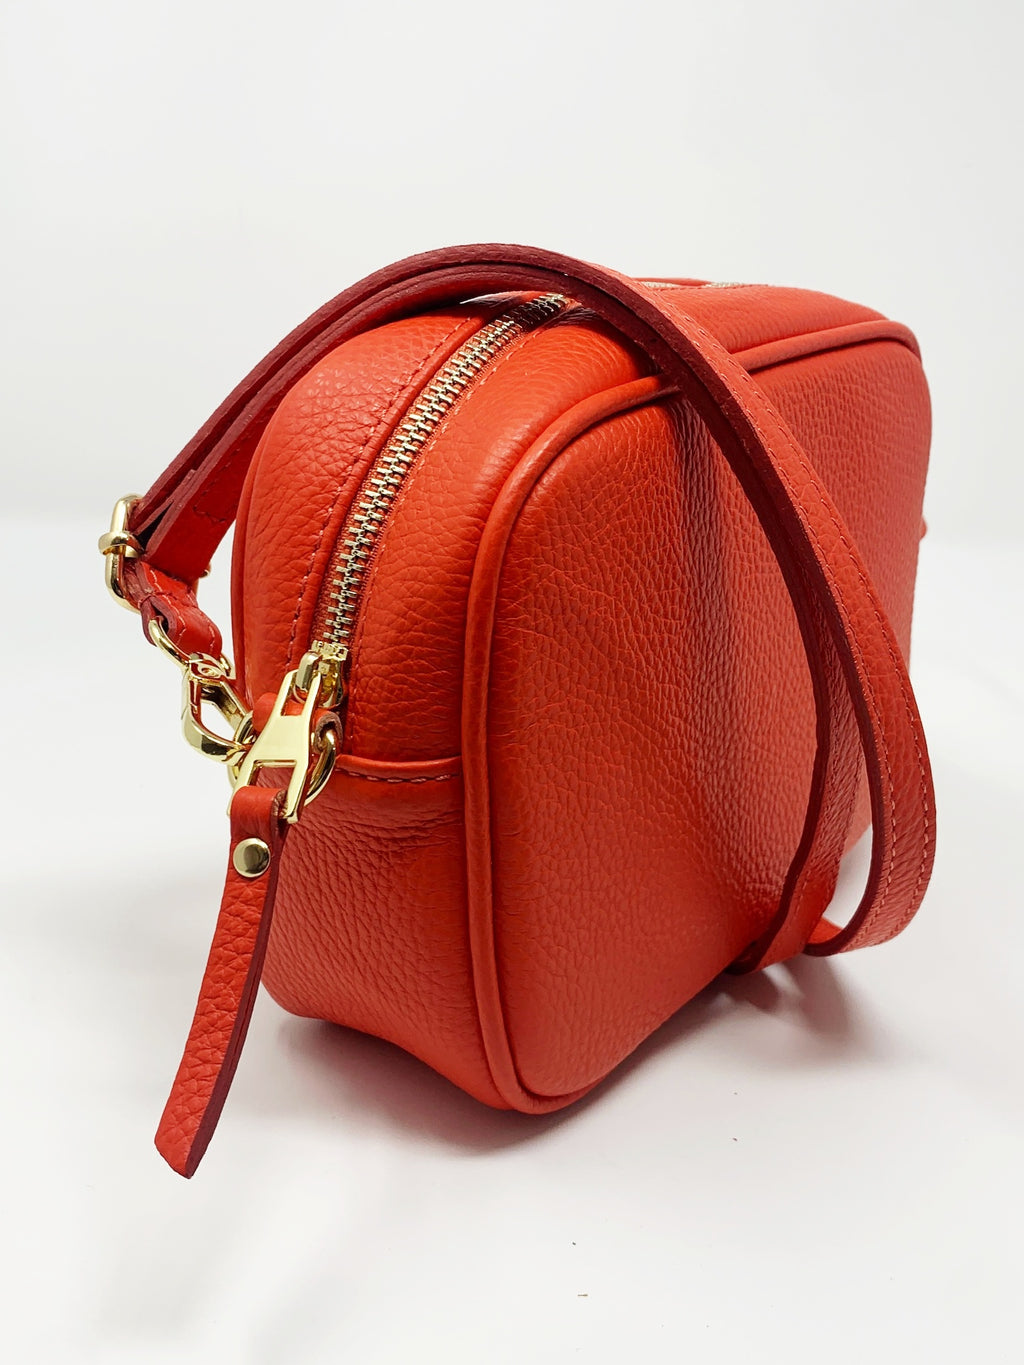 Firenze Bag in Coral